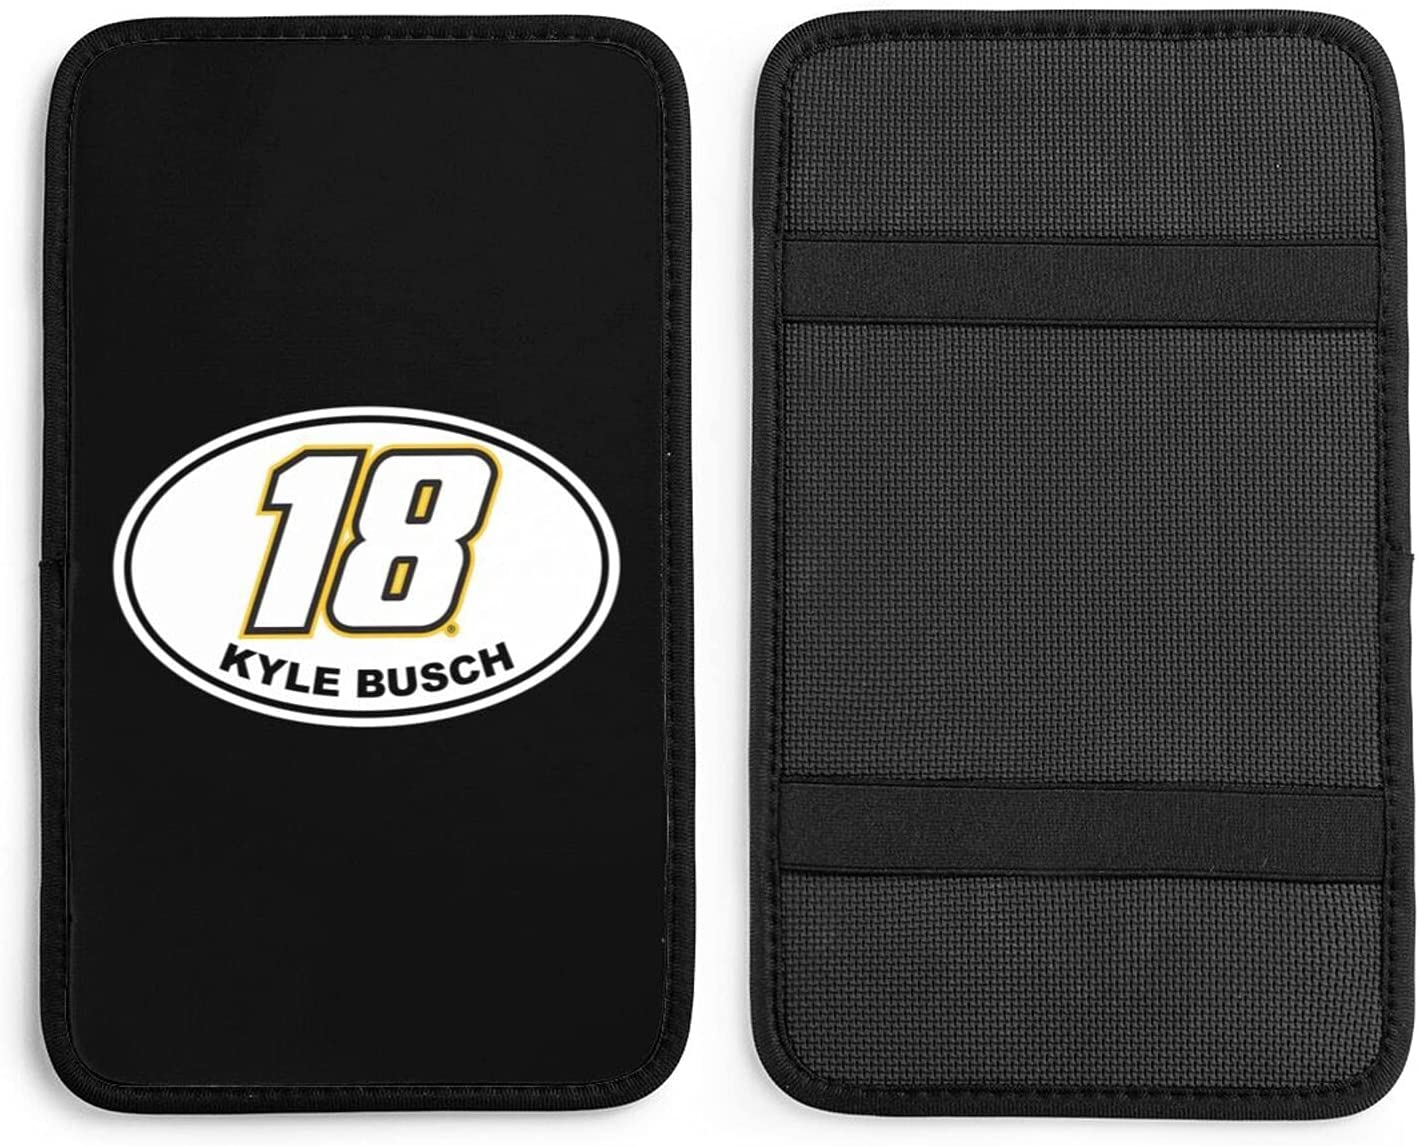 Challenge the lowest price of Japan ☆ Kyle-Busch #18 Center Console OFFicial store Cover Auto Armre Car-Universal Pad